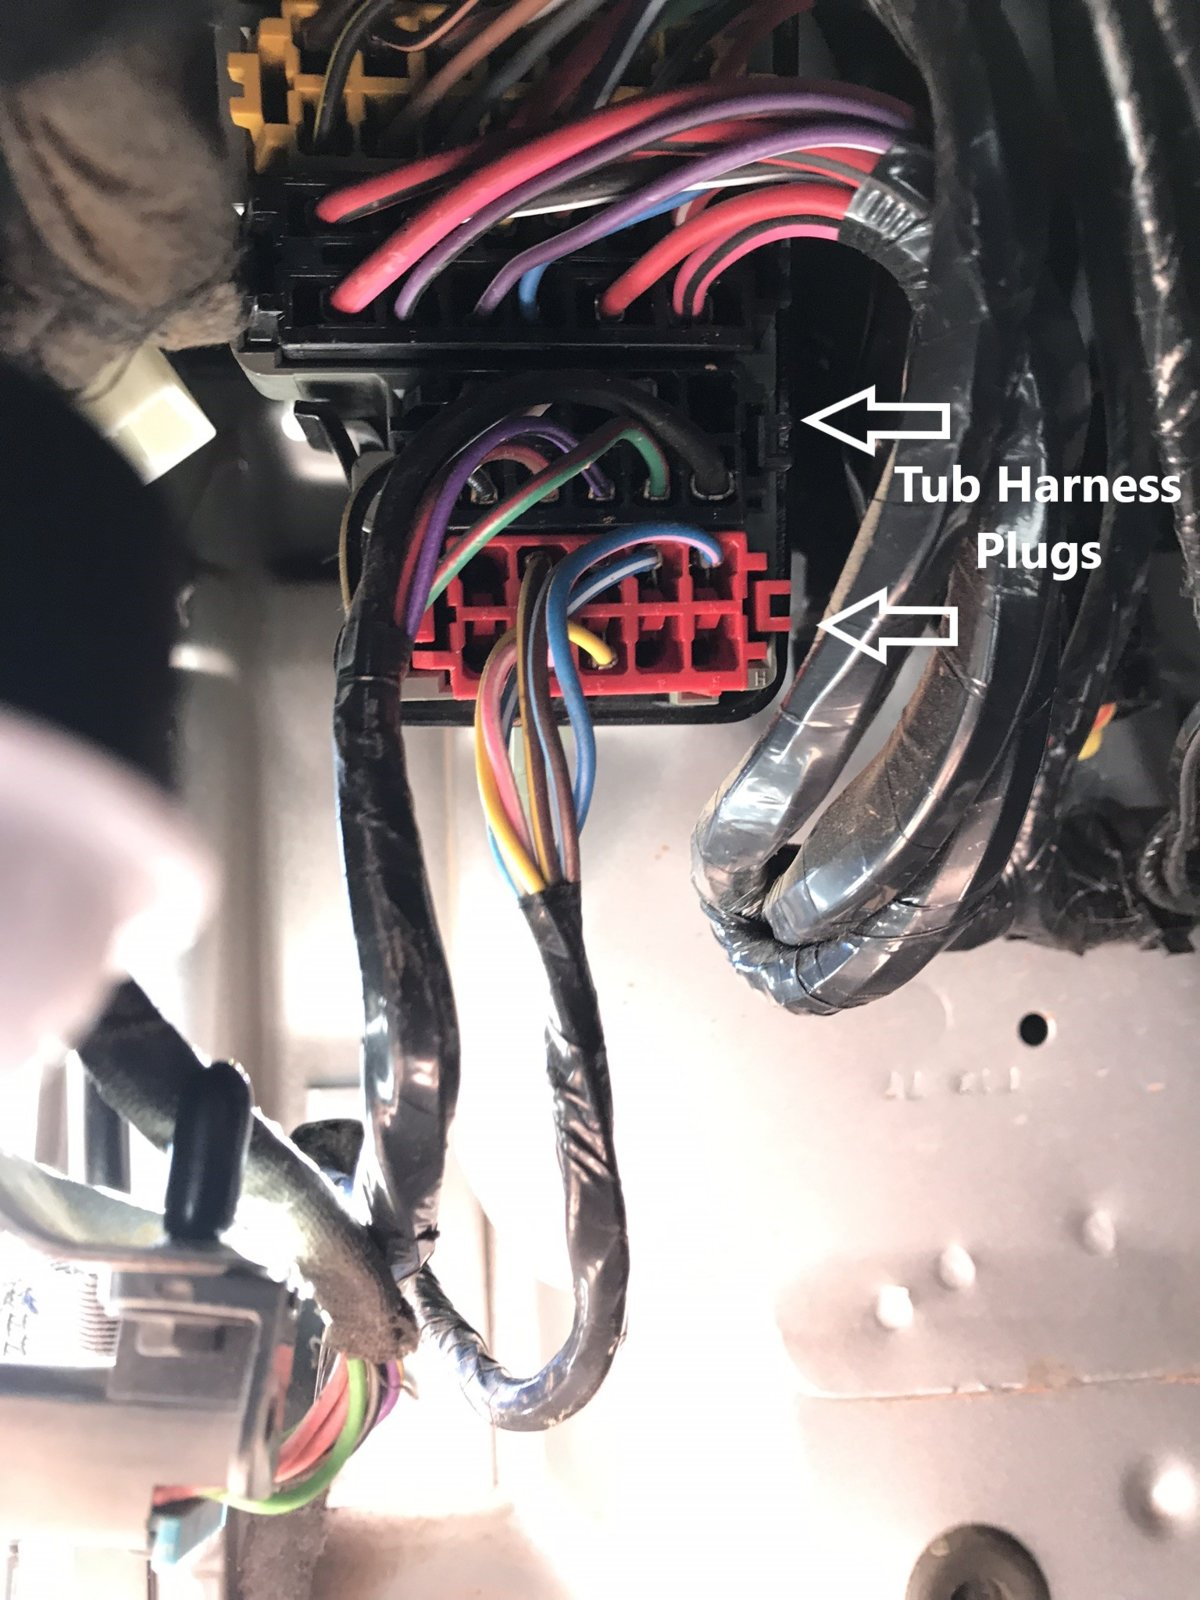 hight resolution of go ahead and start by finding the 100 way connector under the dash next to where your left leg would be remove the bottom black and red plugs